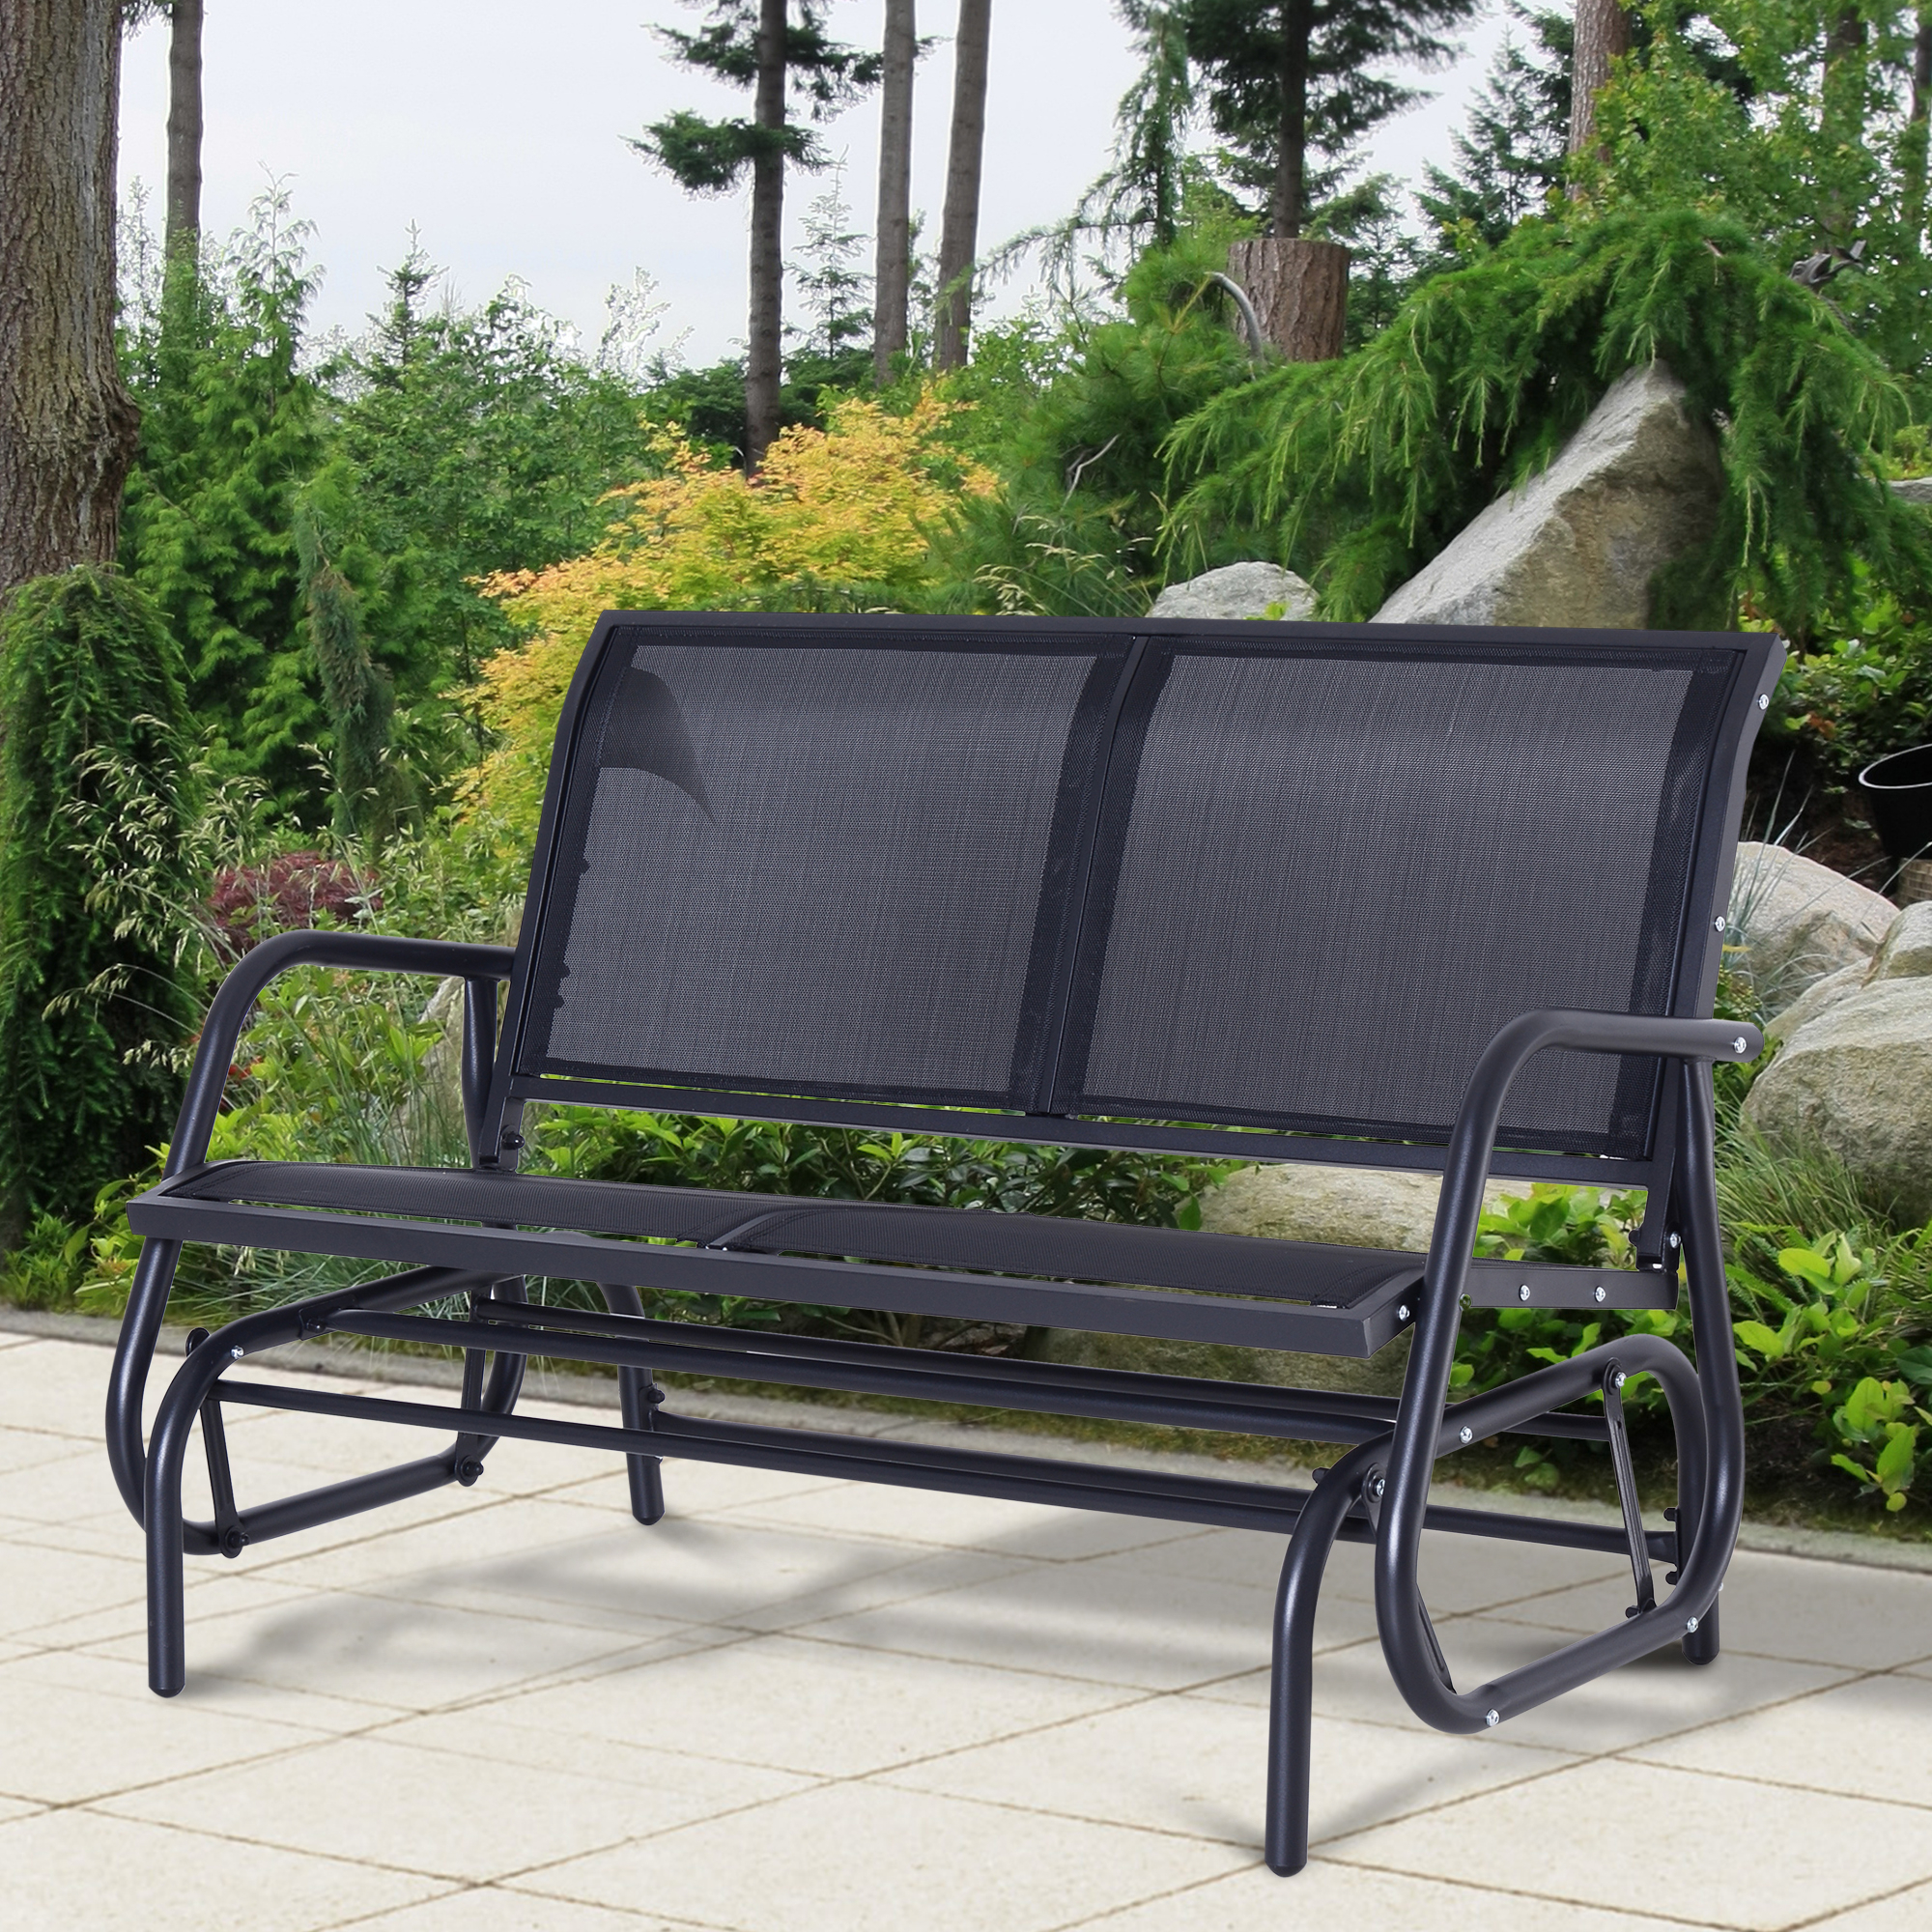 Trendy Details About Outsunny Patio Garden Glider Bench 2 Person Double Swing  Chair Rocker Deck Black Within 2 Person Antique Black Iron Outdoor Gliders (Gallery 5 of 30)